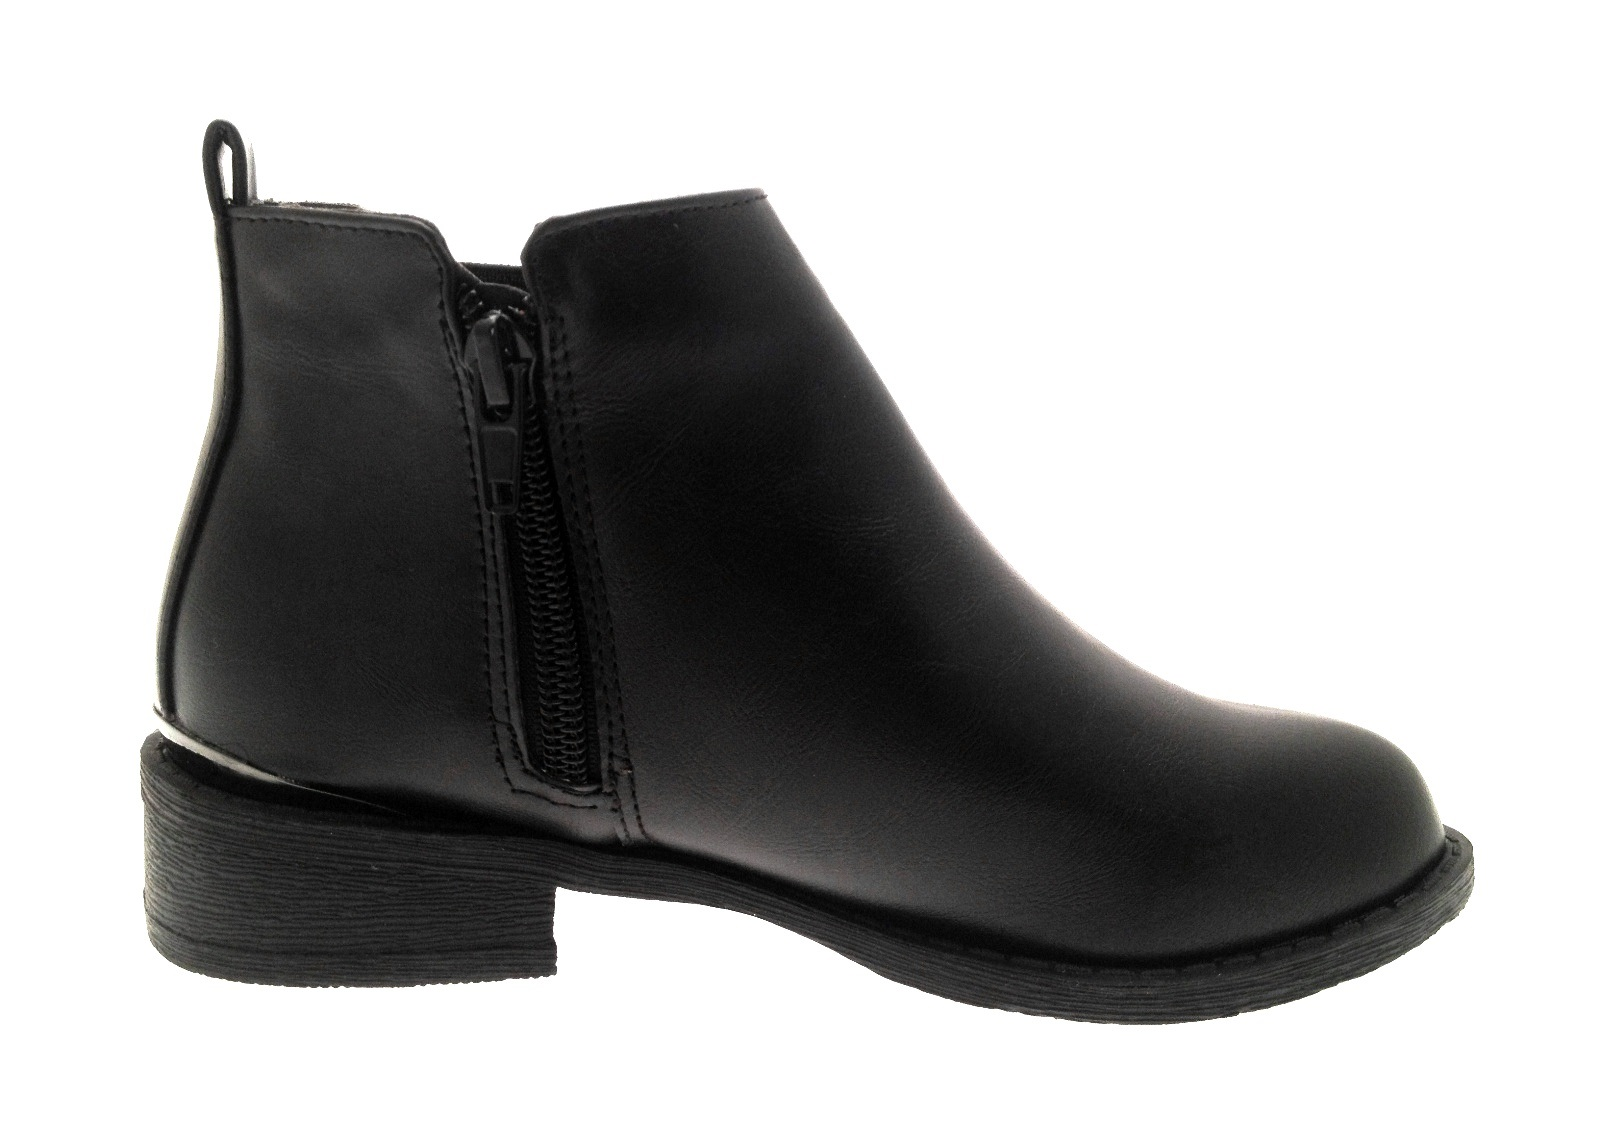 Free shipping BOTH ways on girls ankle boots, from our vast selection of styles. Fast delivery, and 24/7/ real-person service with a smile. Click or call